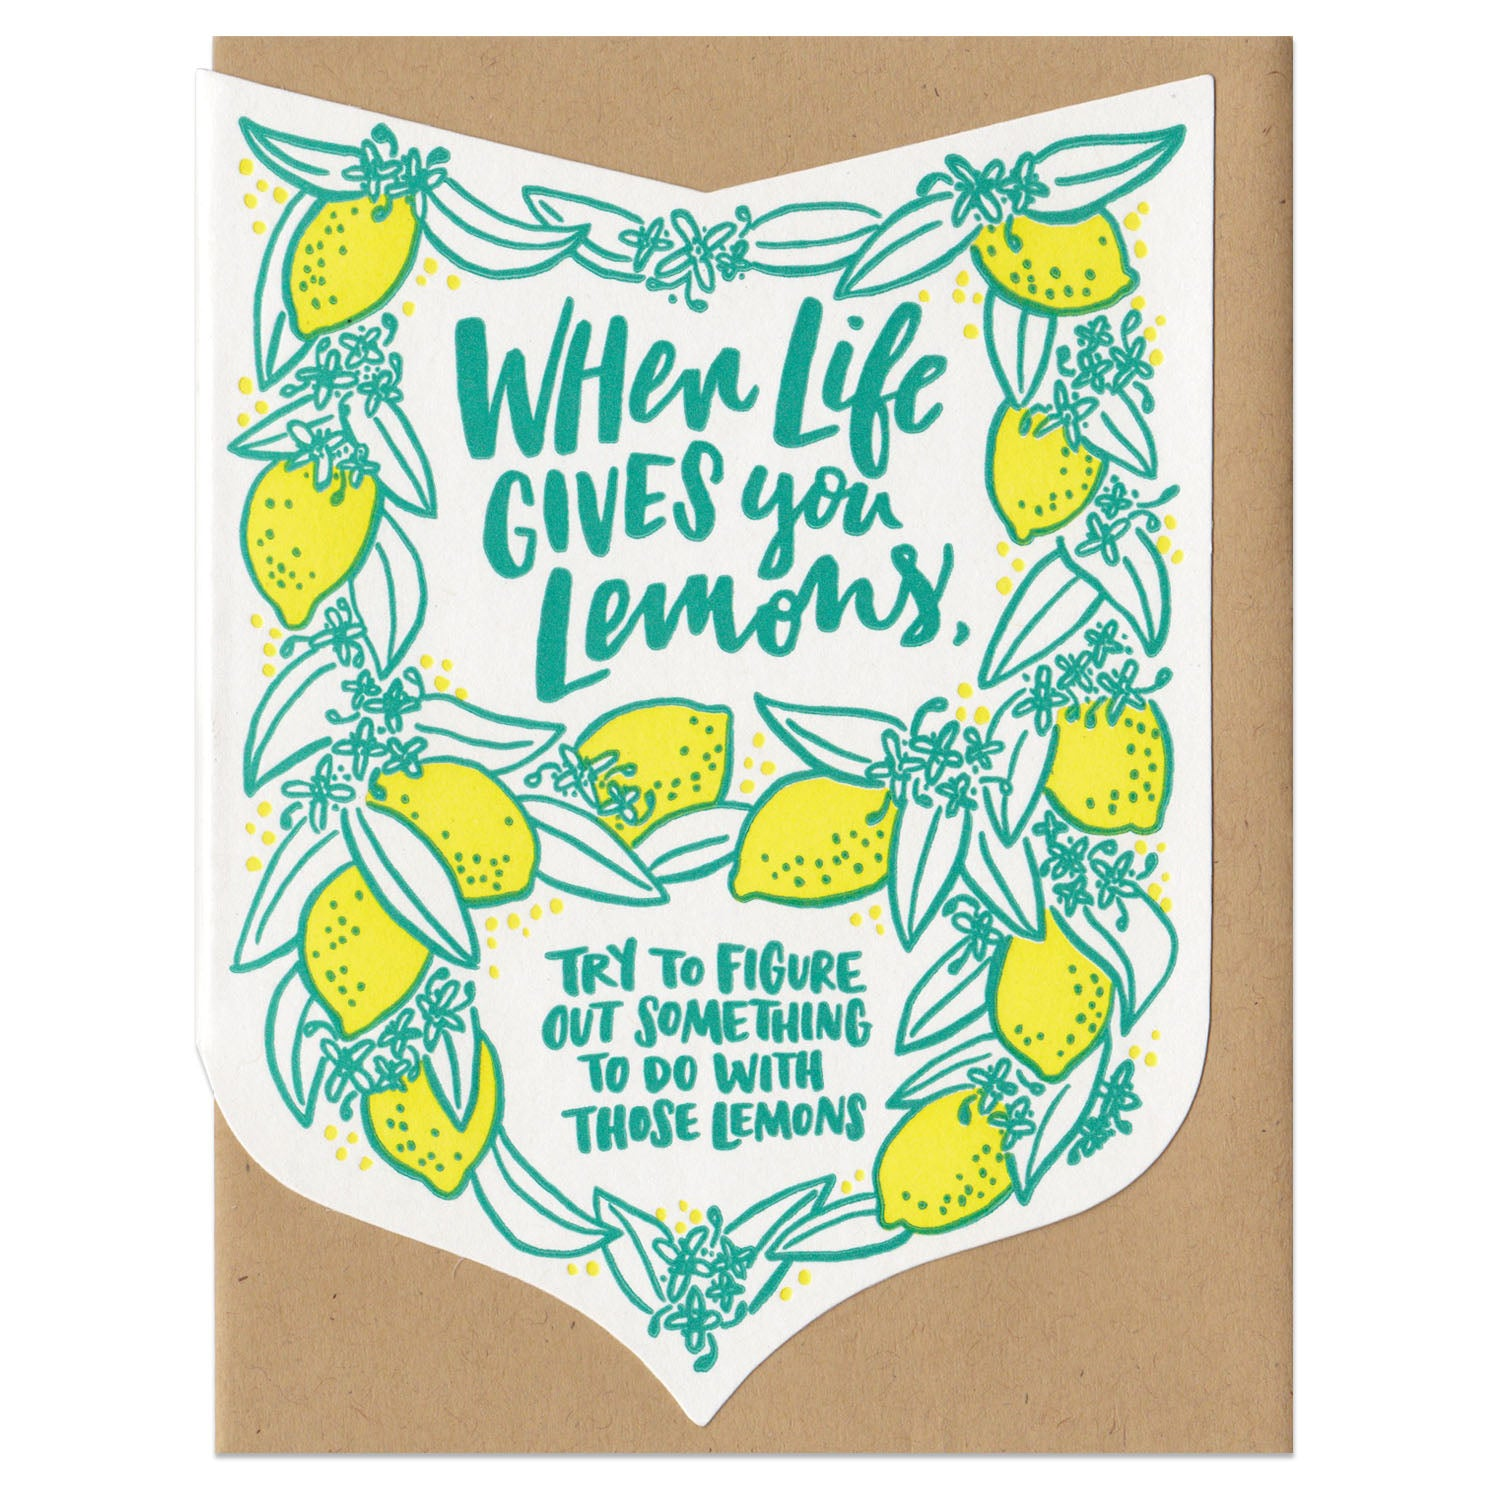 When Life Gives You Lemons Greeting Card Frog Toad Press